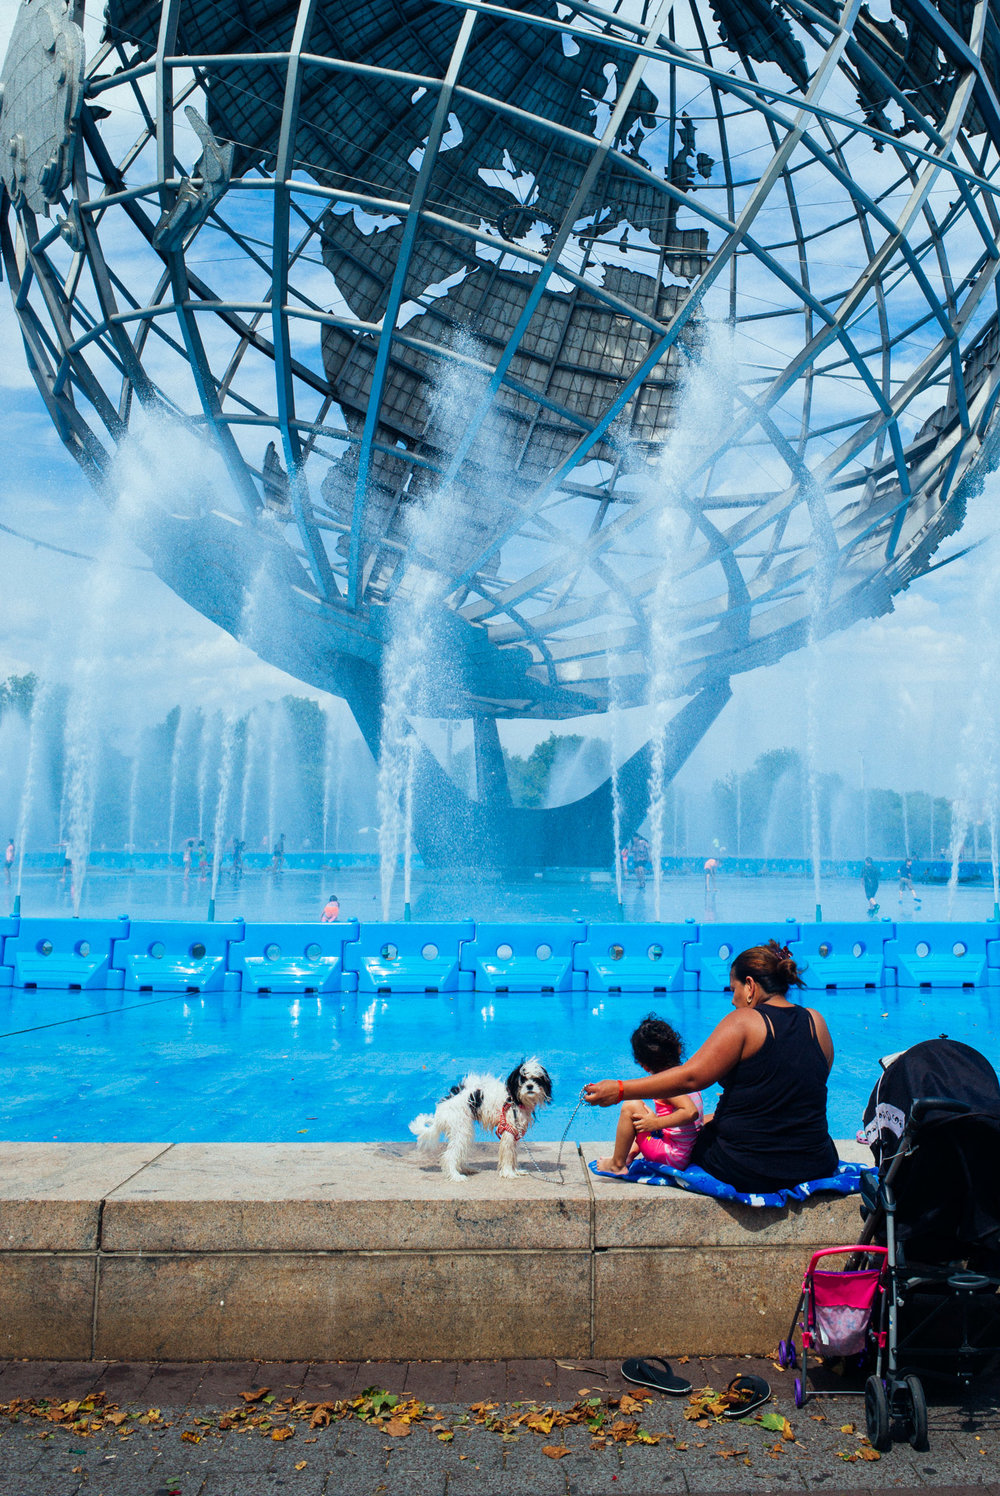 Unisphere, Flushing Meadows Park, Queens